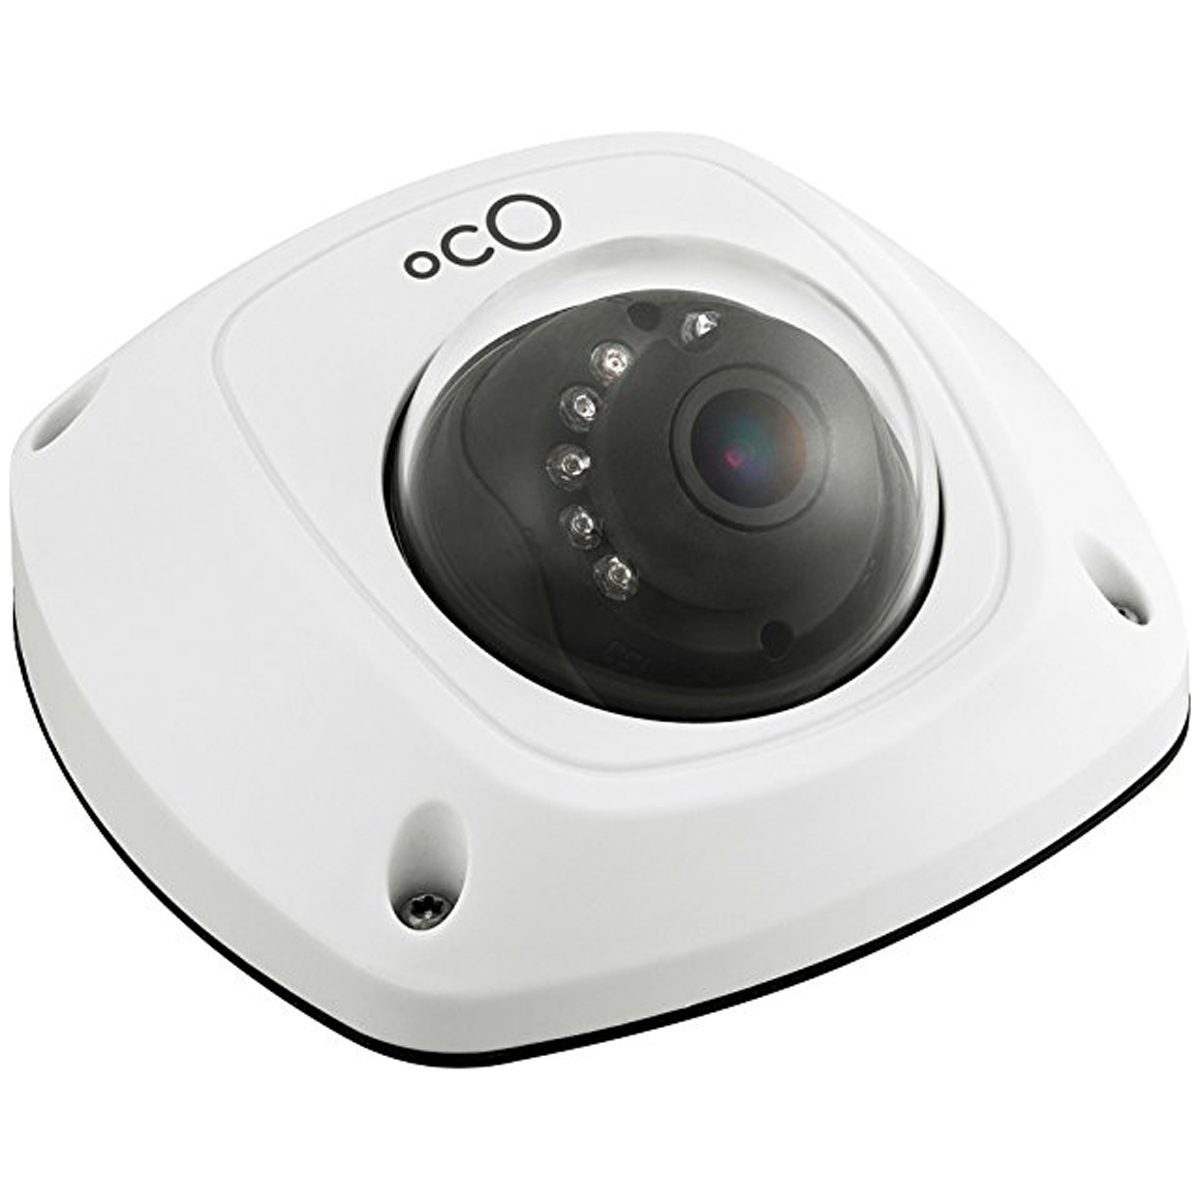 71RRZG3r7eL._SY500_ Oco Pro Dome security camera